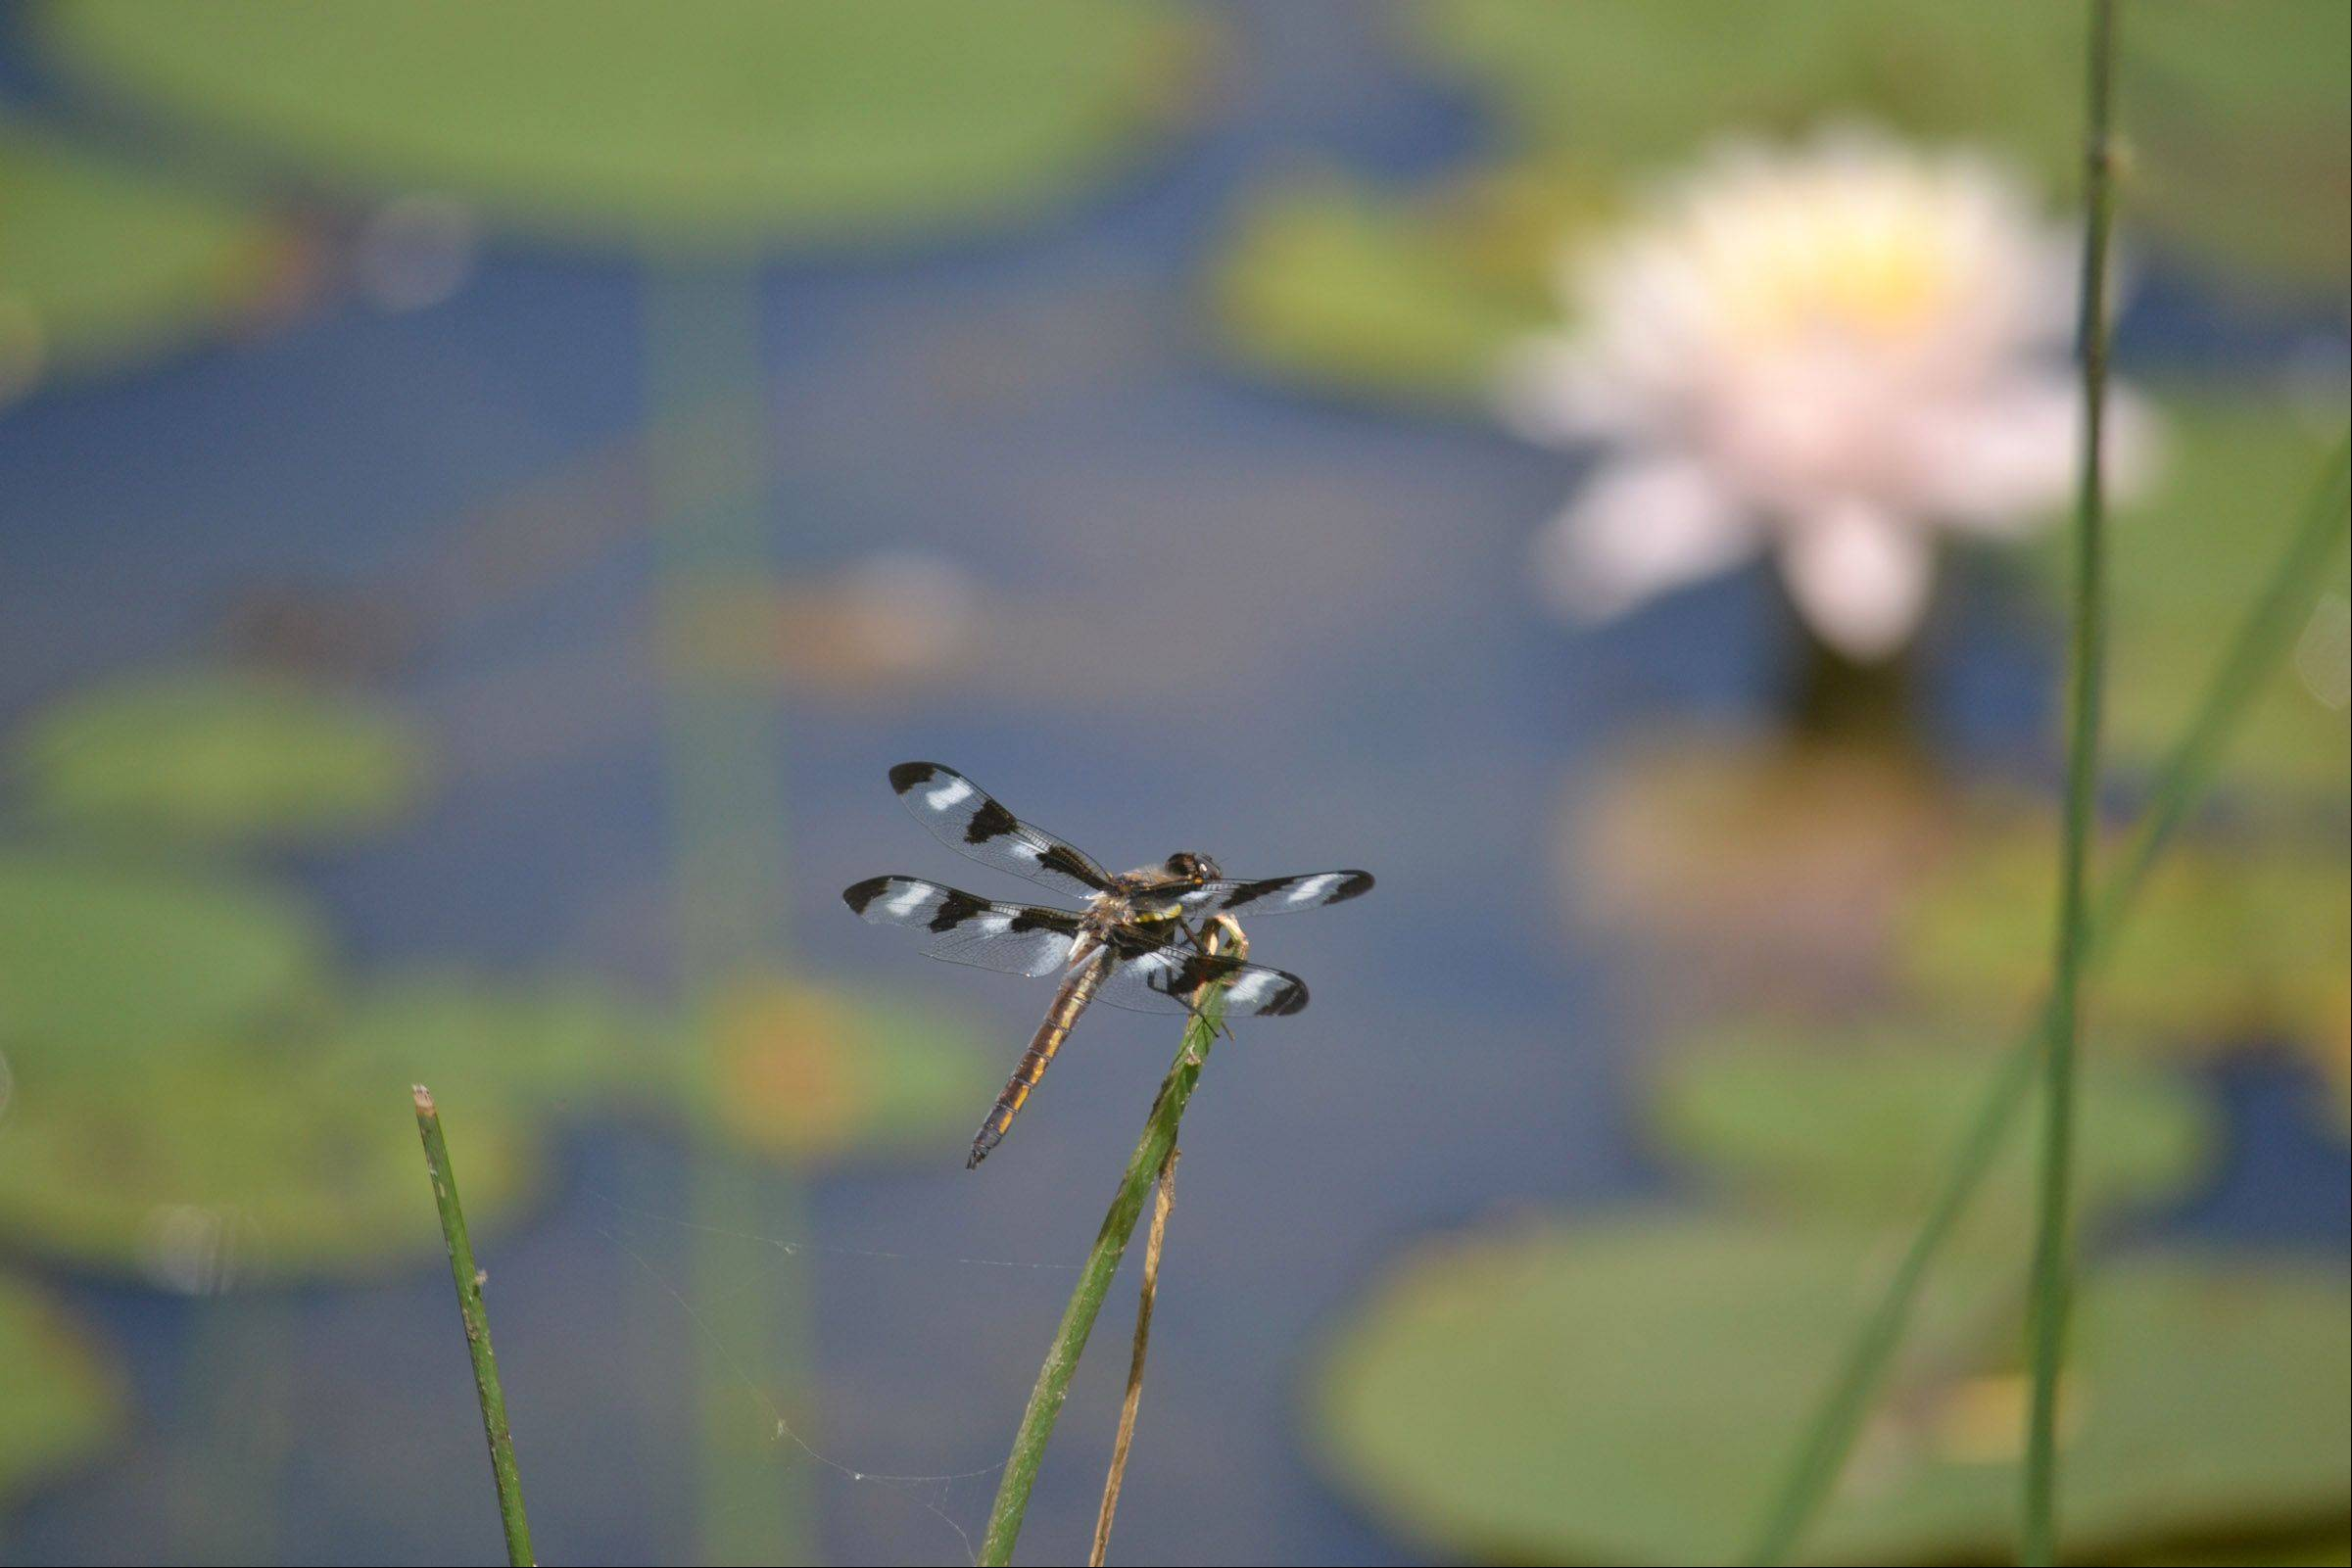 A dragonfly sits on a reed last week at the Bristol Renessance Faire in Wisconsin.